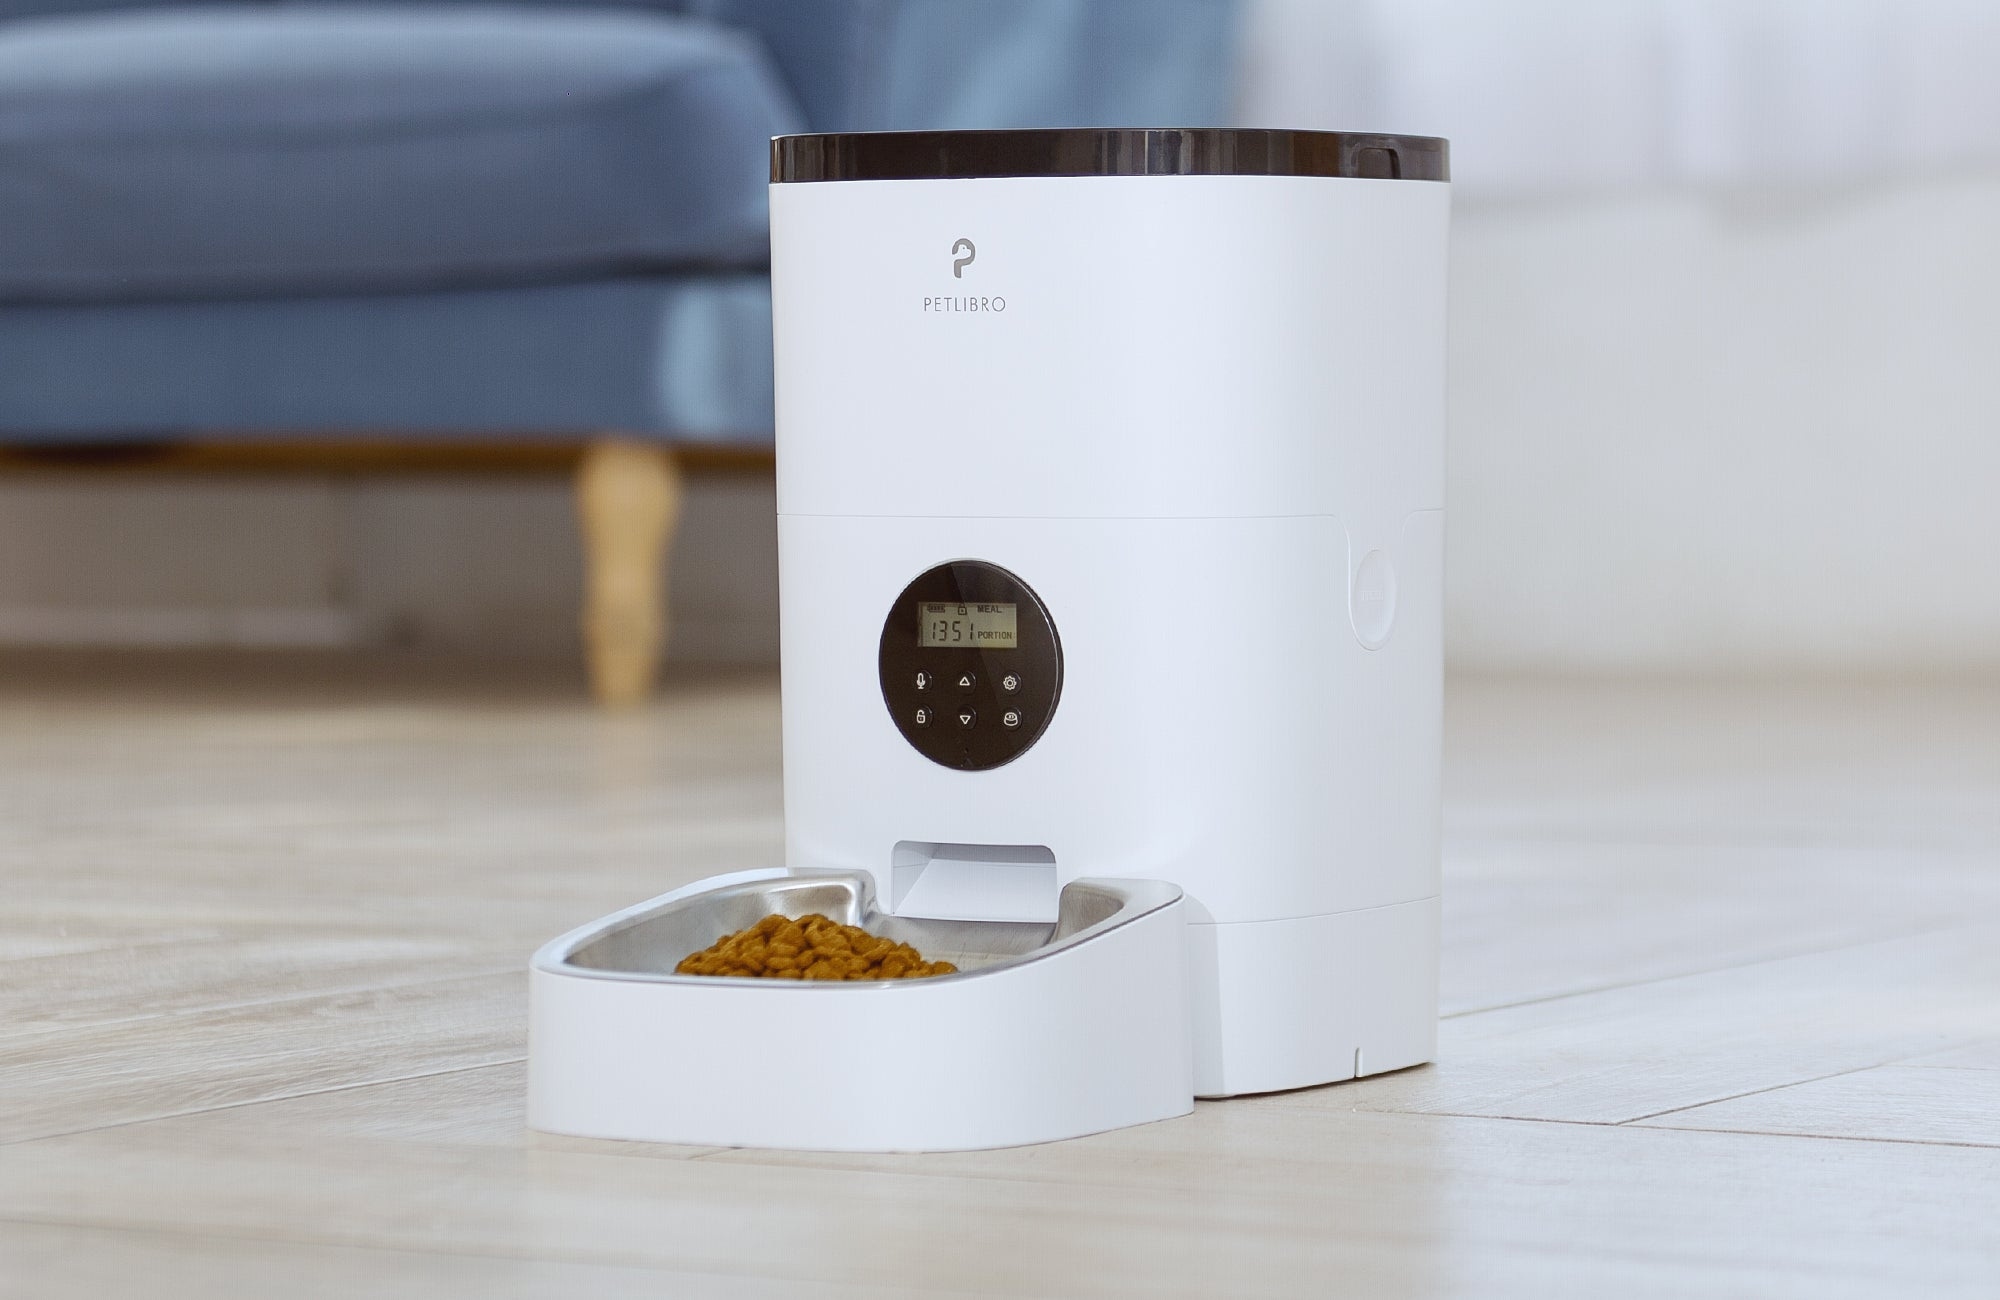 Automatic Pet Feeder Scheduling - Petlibro